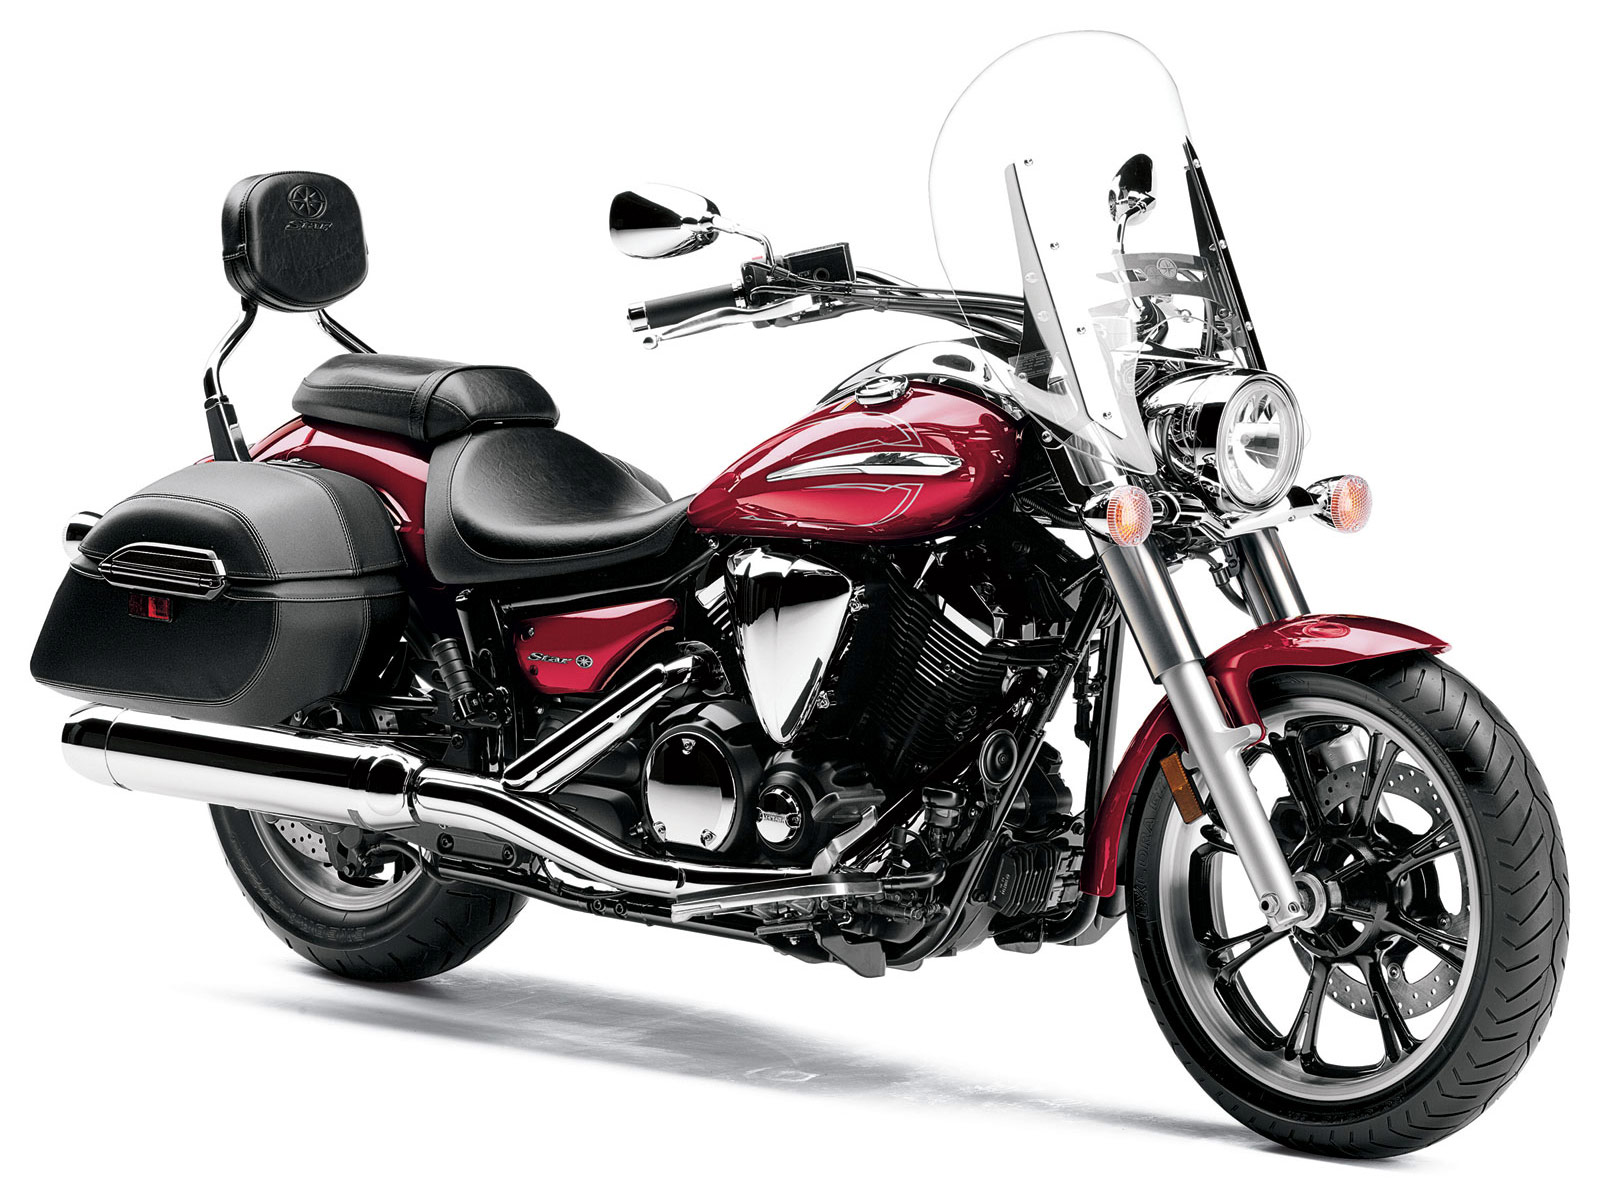 2013 yamaha v star 950 tourer motorcycle pictures review